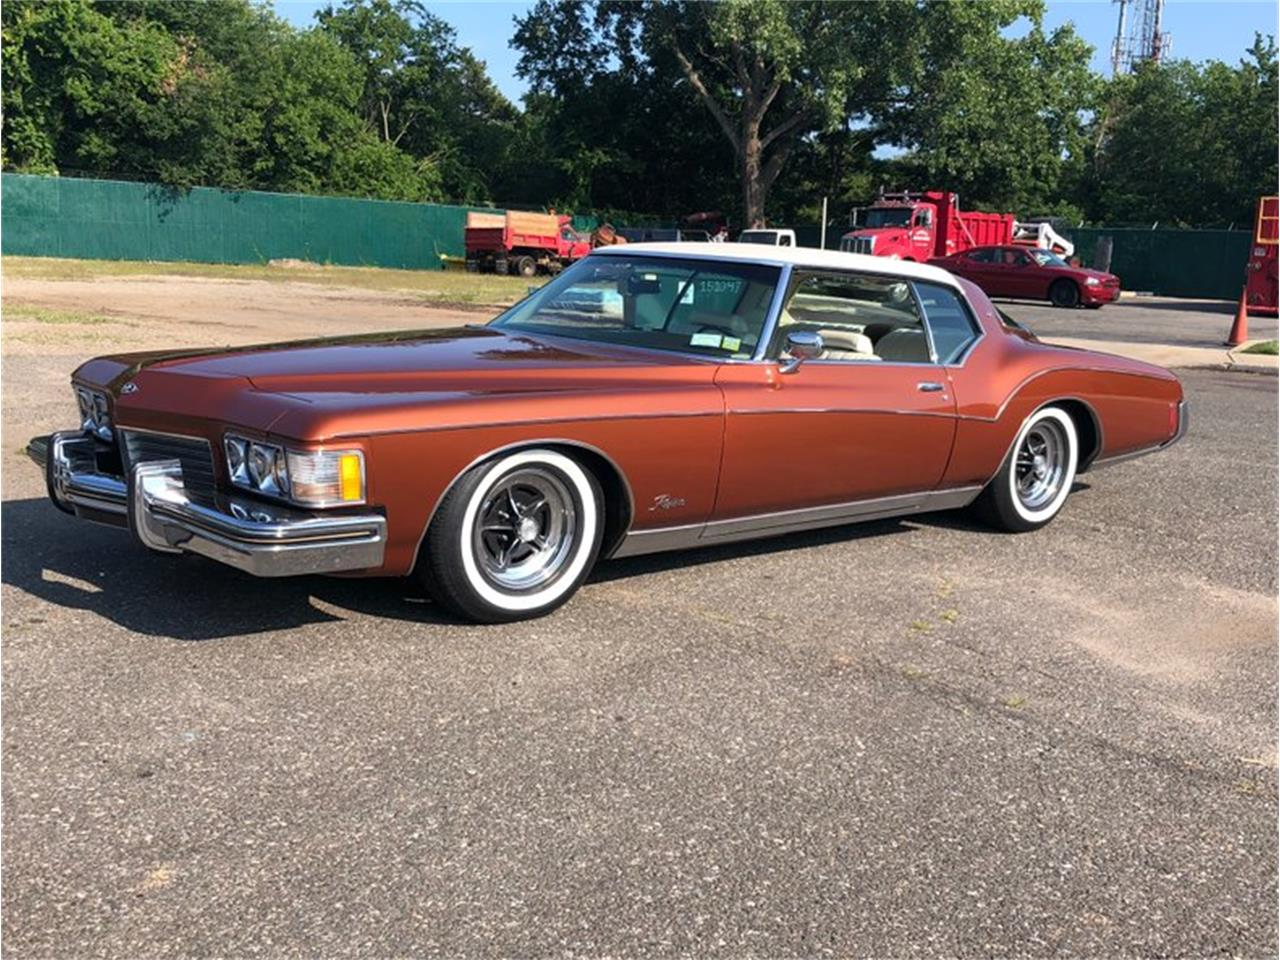 For Sale: 1973 Buick Riviera in West Babylon, New York